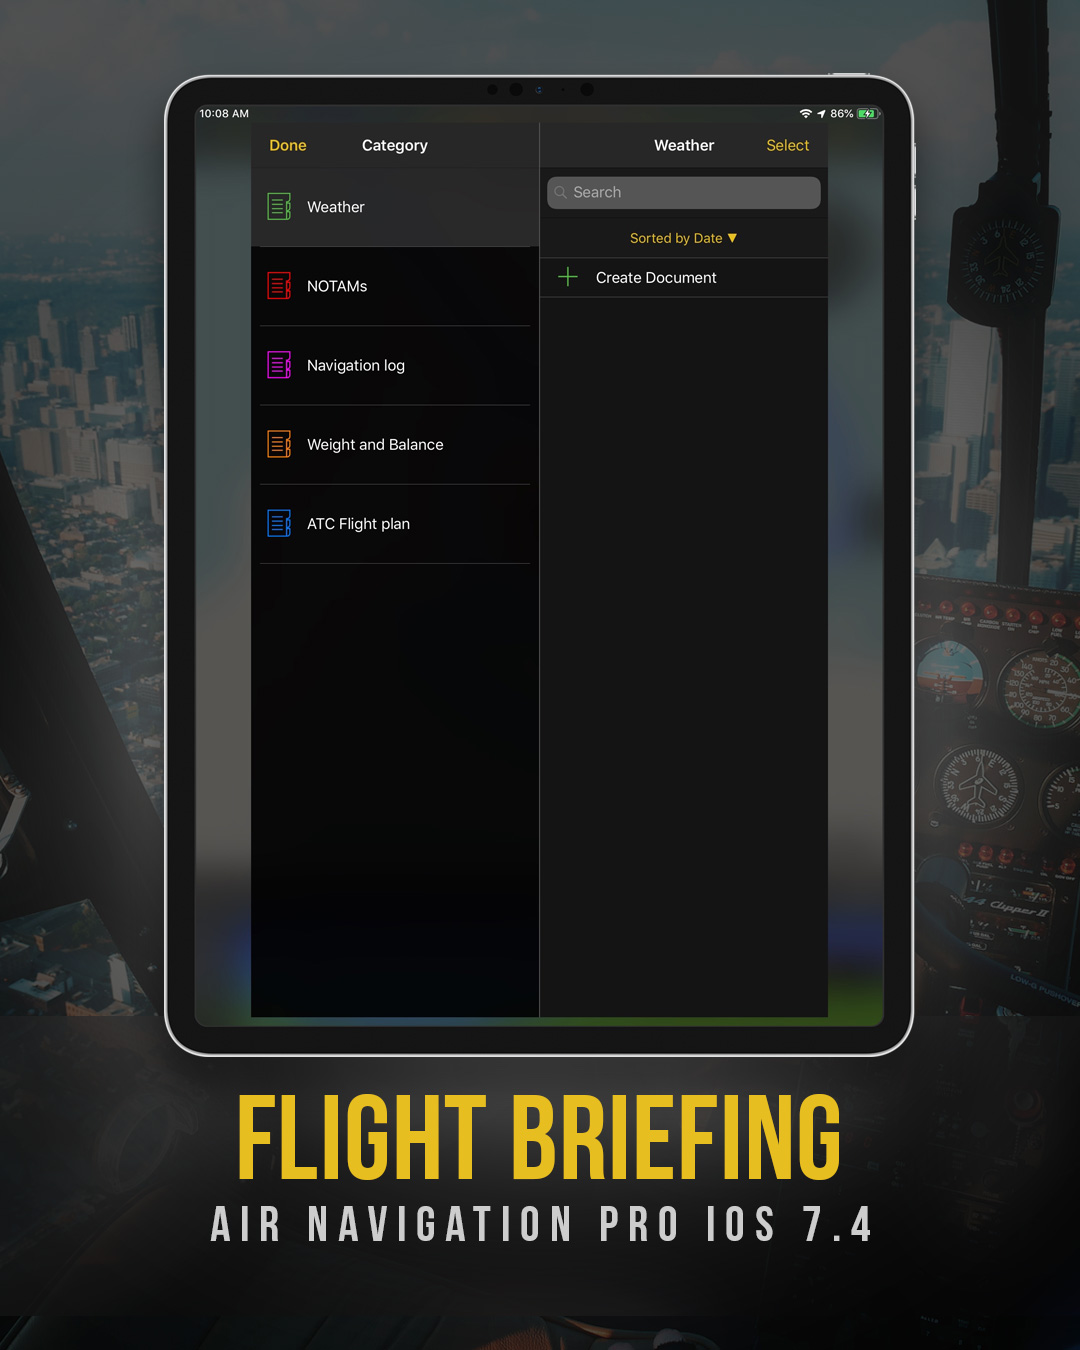 Introducing the Flight Briefing in Air Navigation Pro iOS version